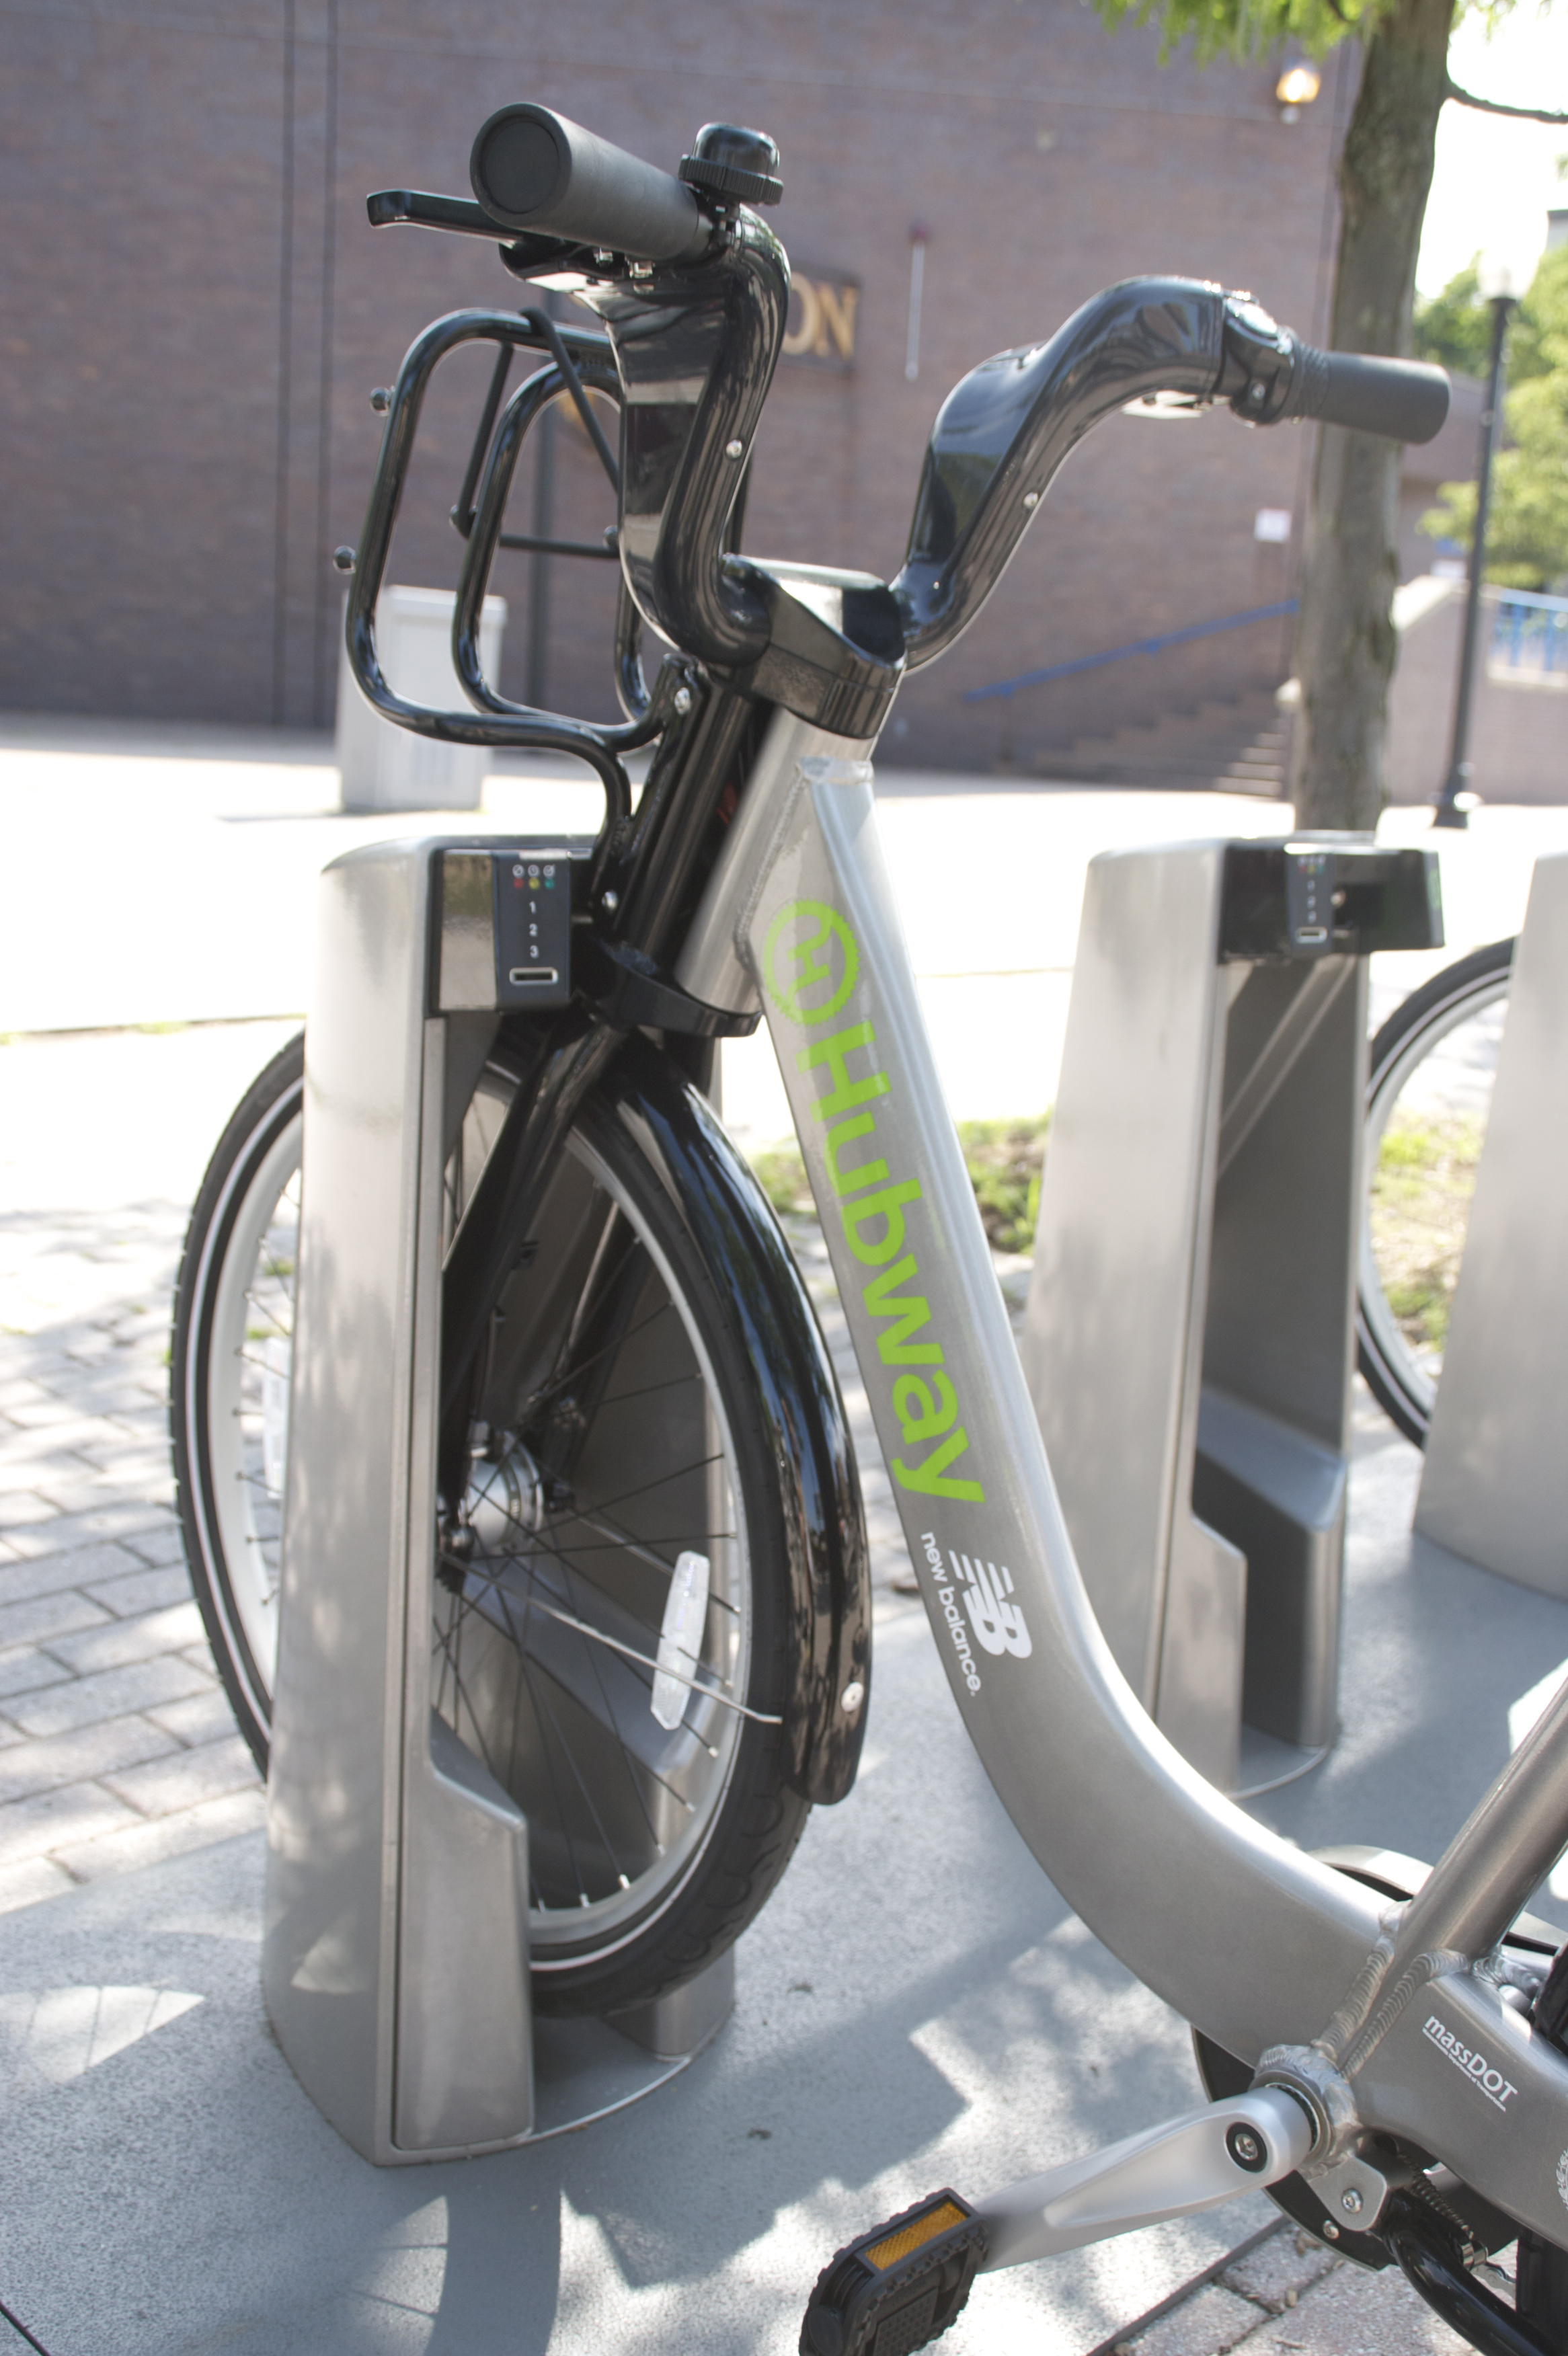 hubway dock